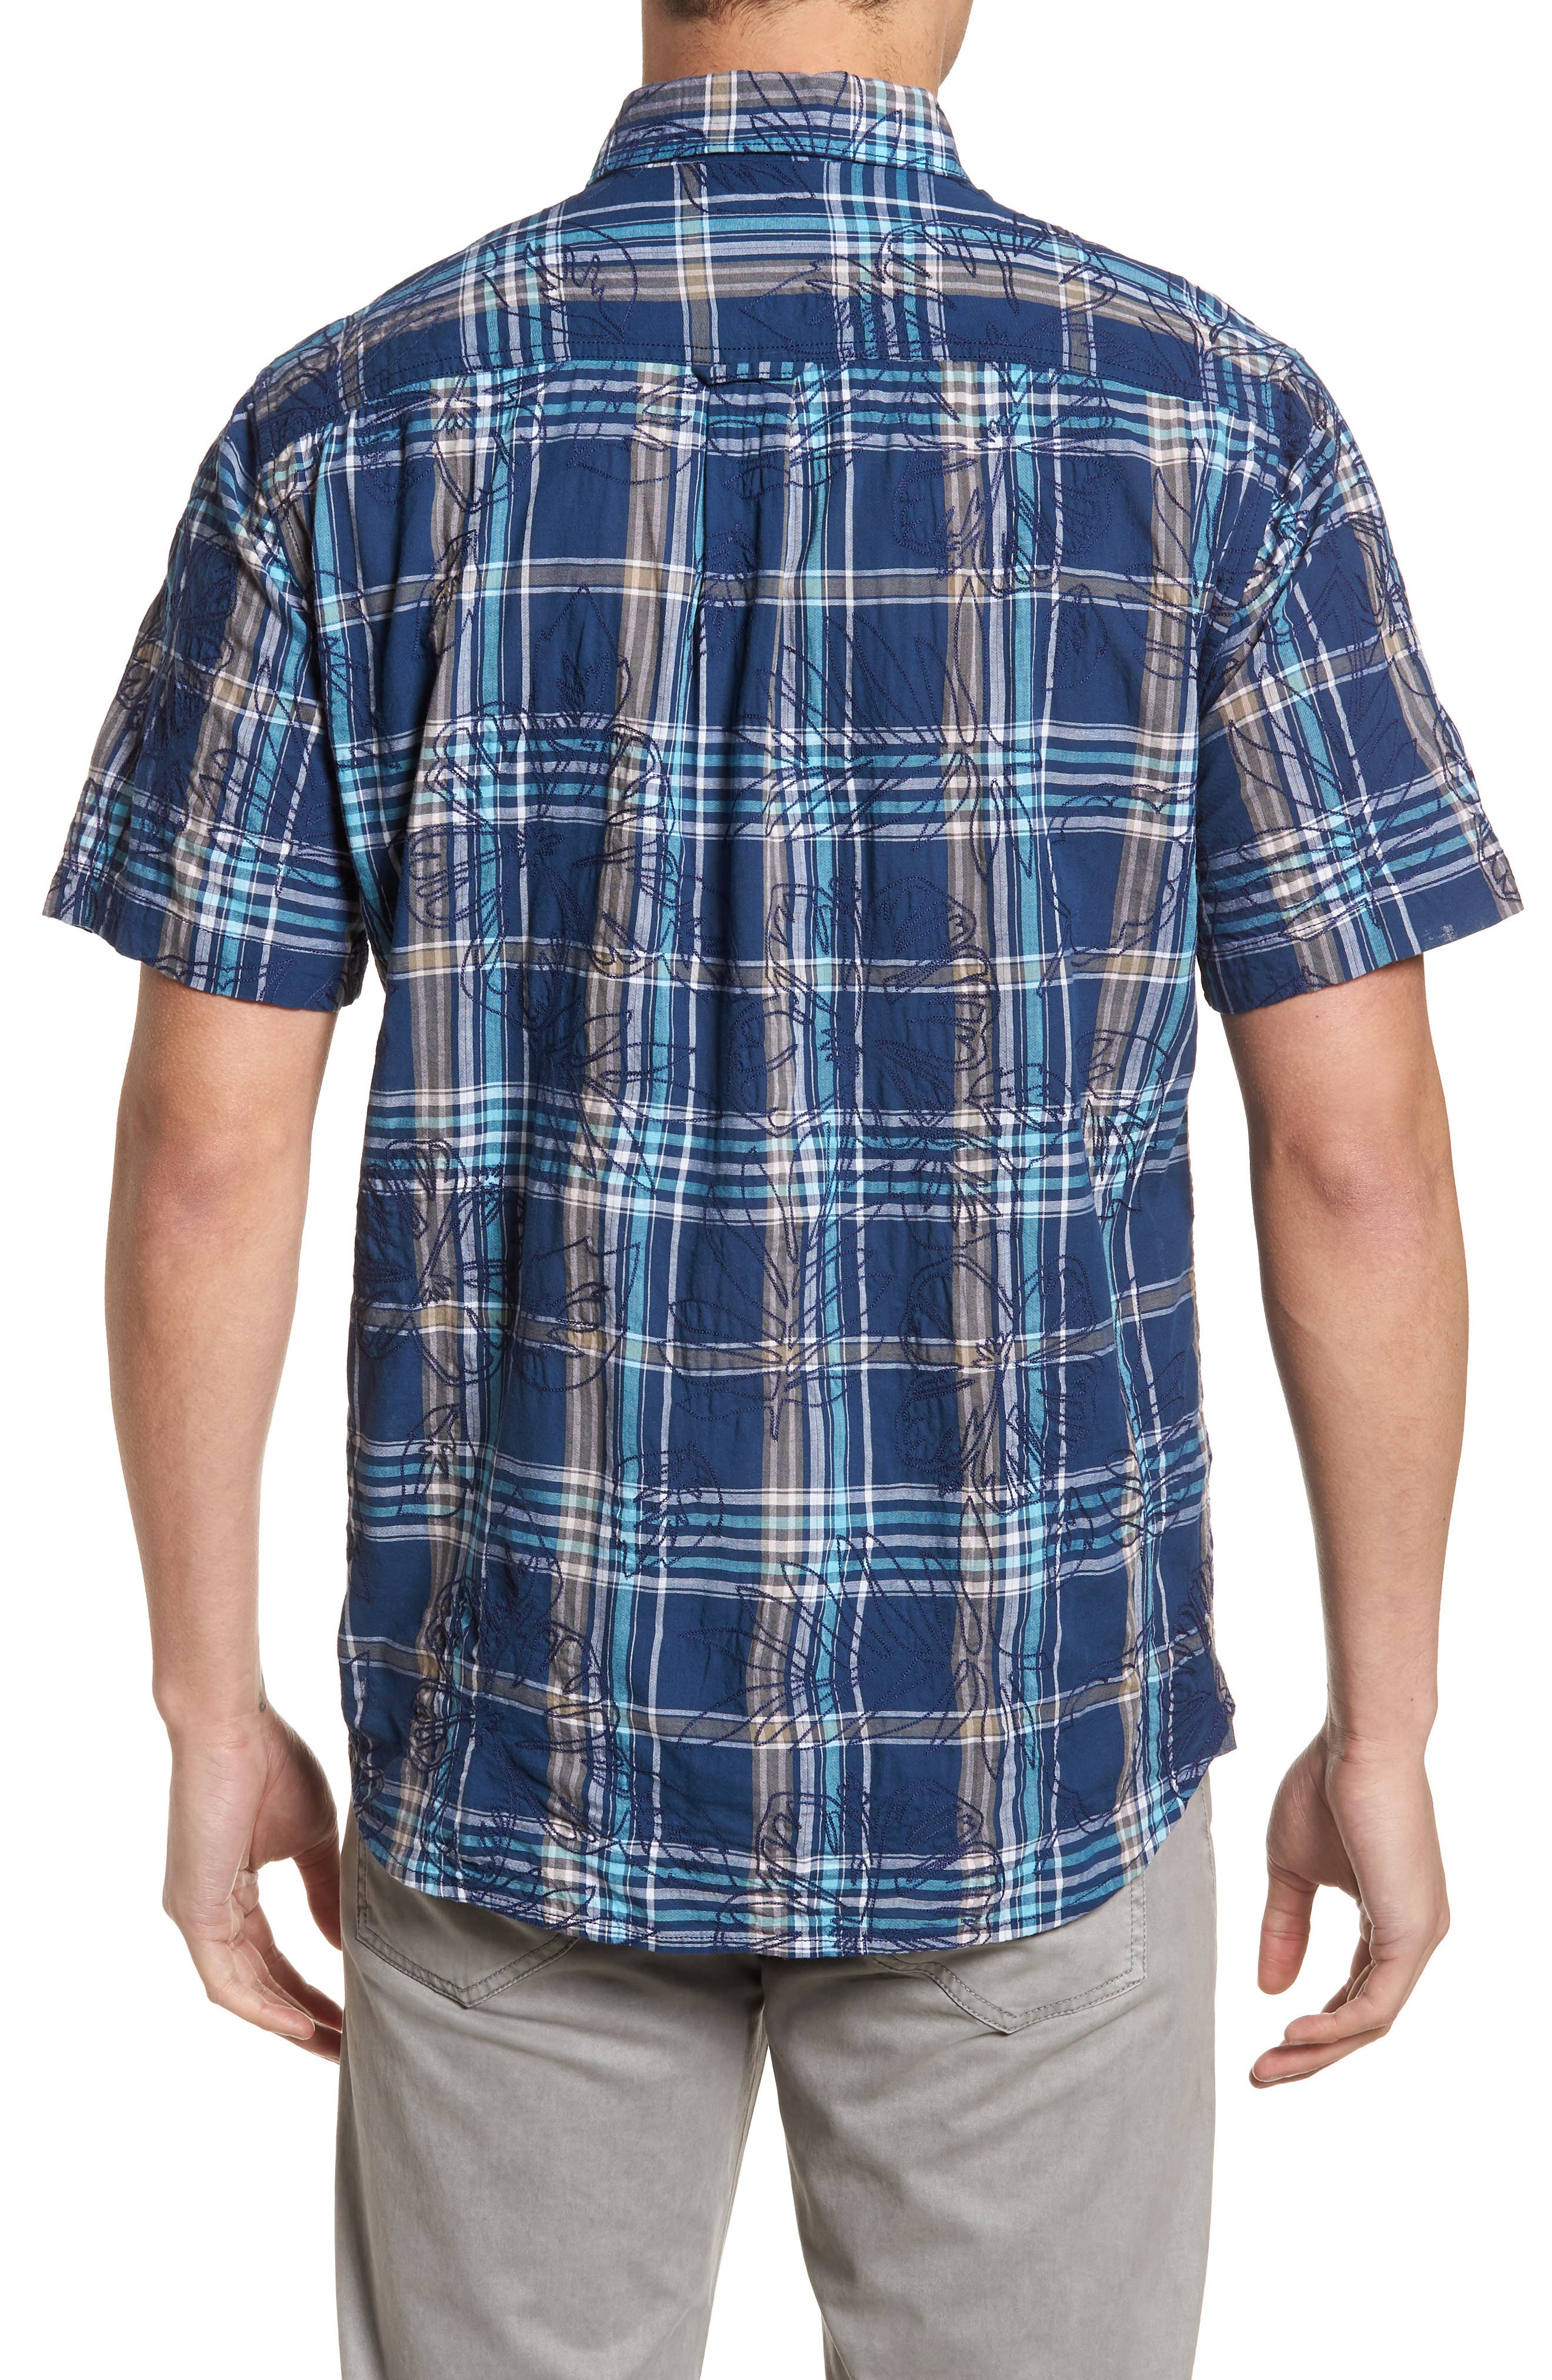 Palazzo Regular Fit Plaid Sport Shirt,                             Alternate thumbnail 2, color,                             400